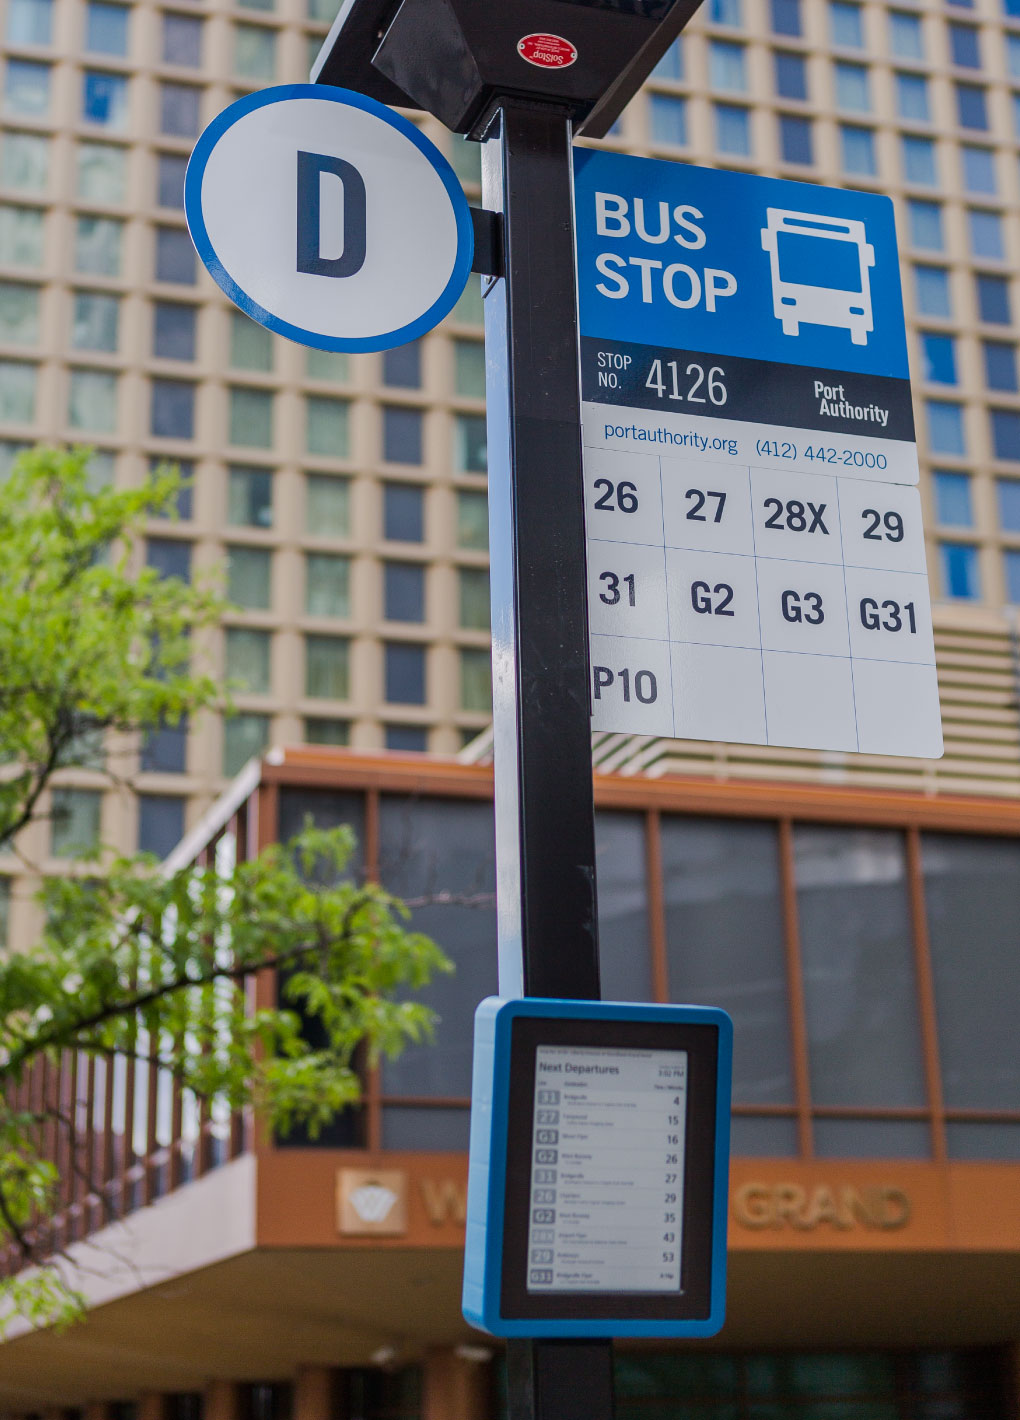 Solar-powered 10-inch Digital Bus Stop ePaper display showing real-time transit information with Brasco SolStop installed in Pittsburgh.